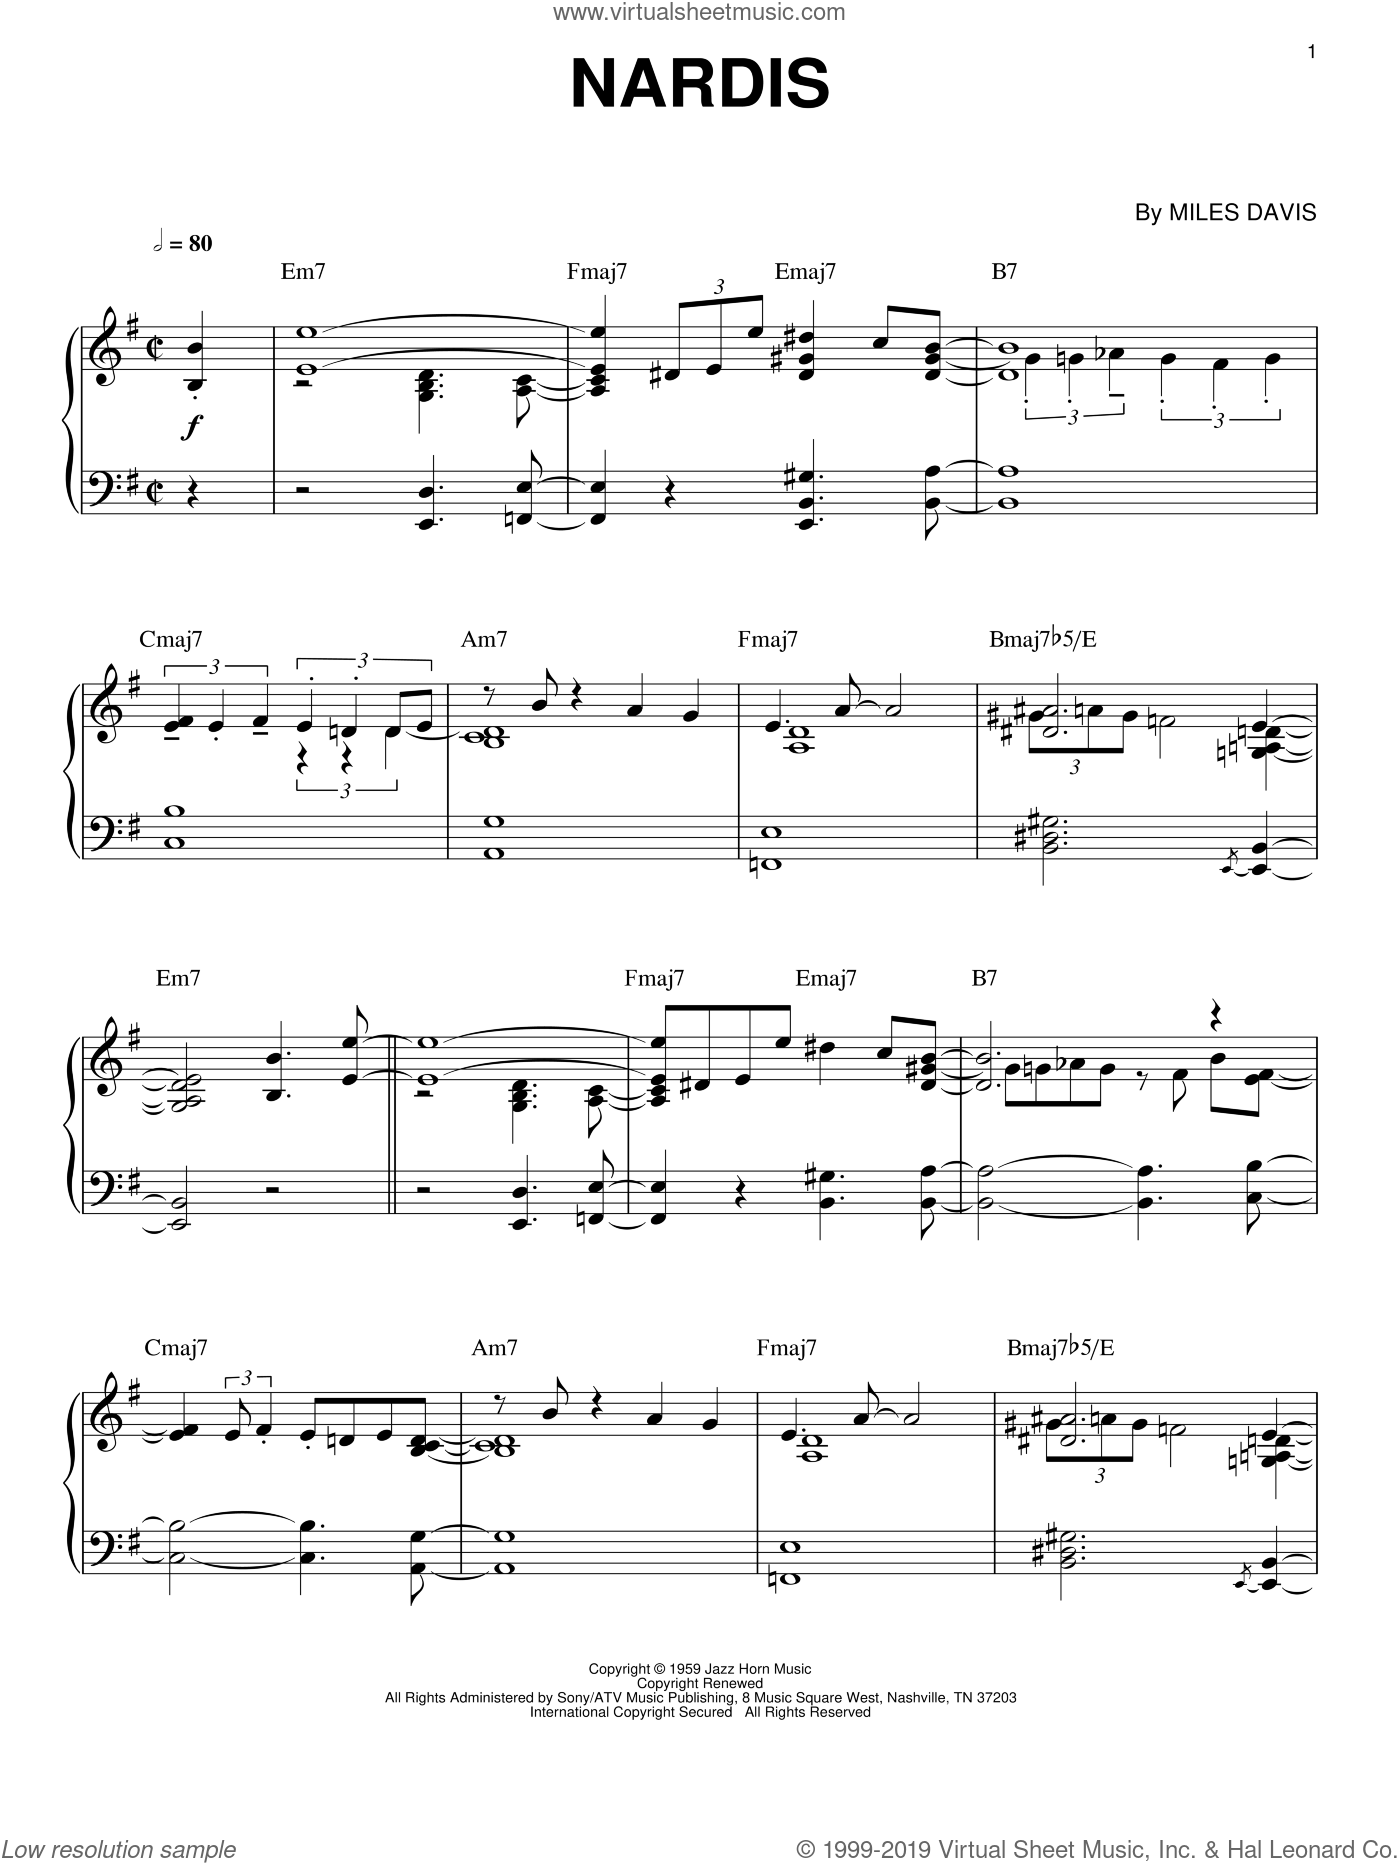 Nardis sheet music for piano solo by Miles Davis and Bill Evans, intermediate skill level